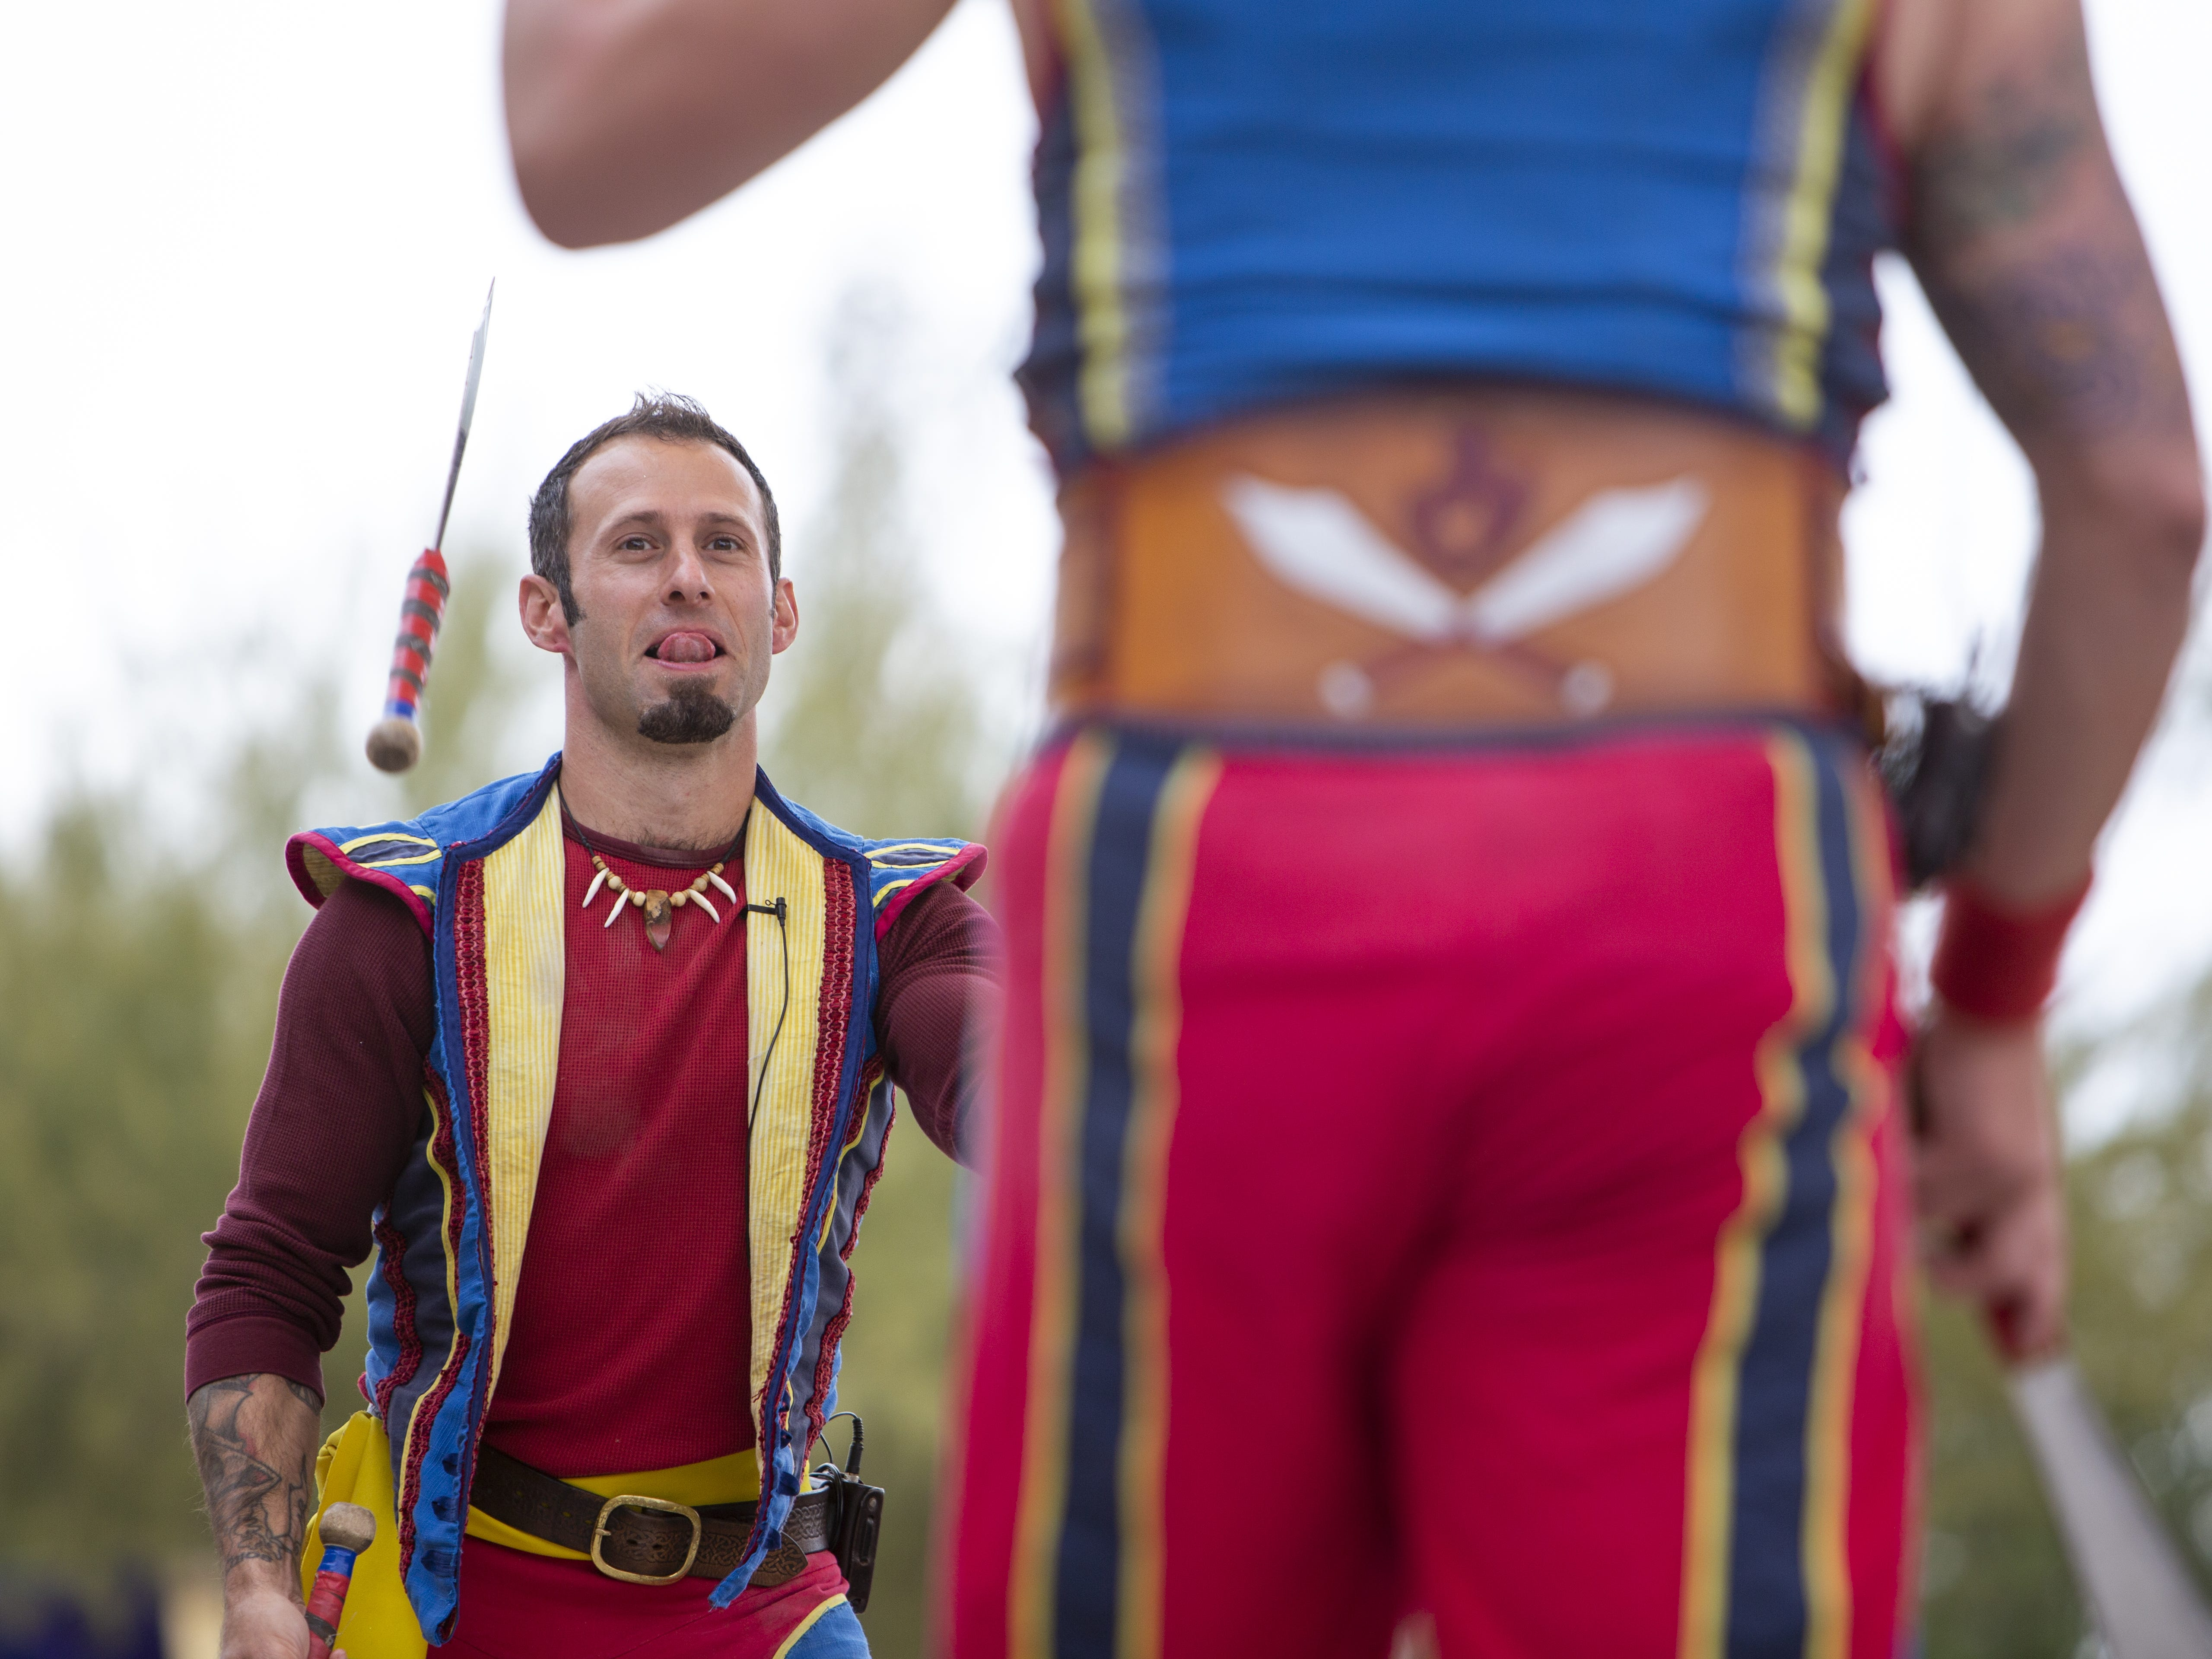 Cameron Tomele of the comedy circus group Barely Balanced juggles knives at the Arizona Renaissance Festival 2019 on Feb. 9, 2019 in Gold Canyon, Ariz.